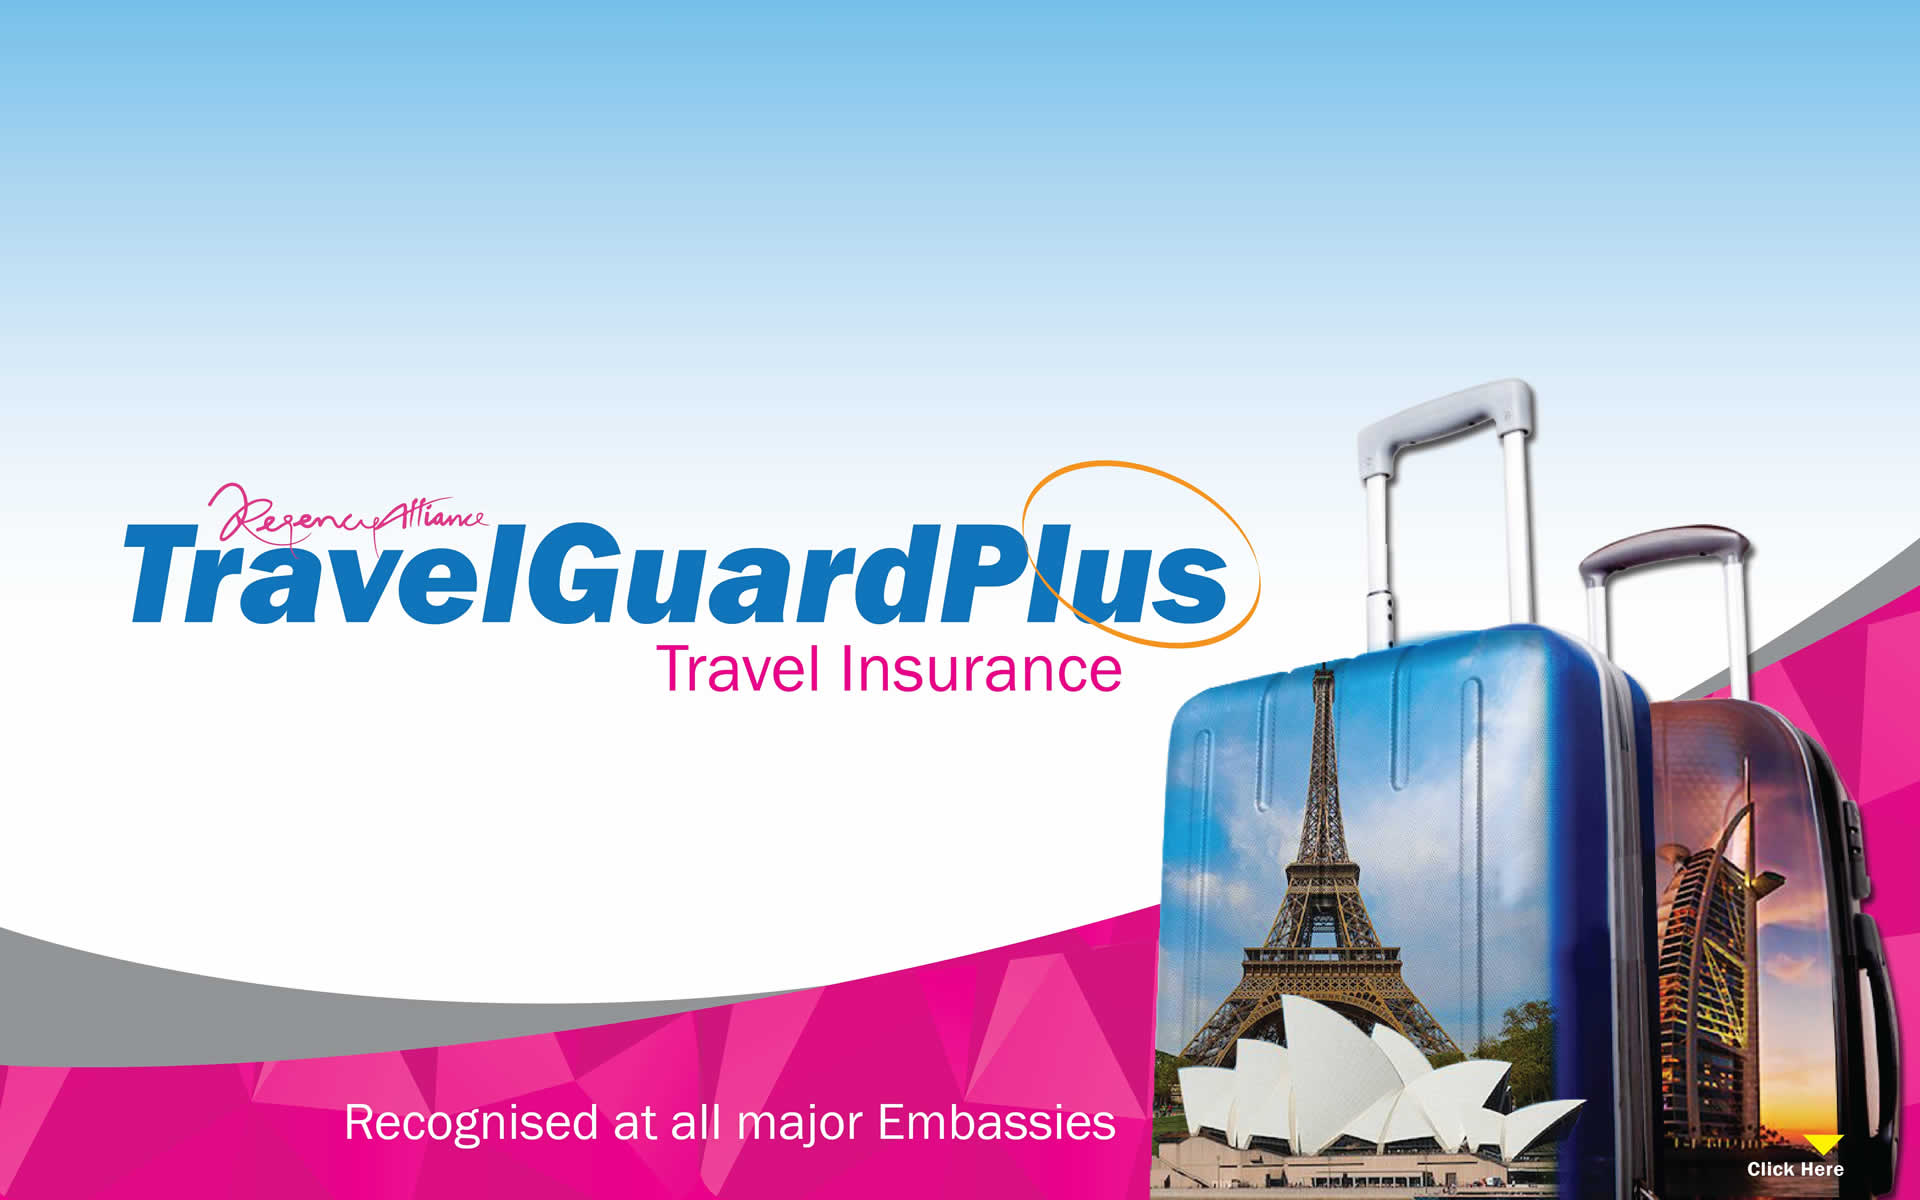 TravelGuardPlus Flyer